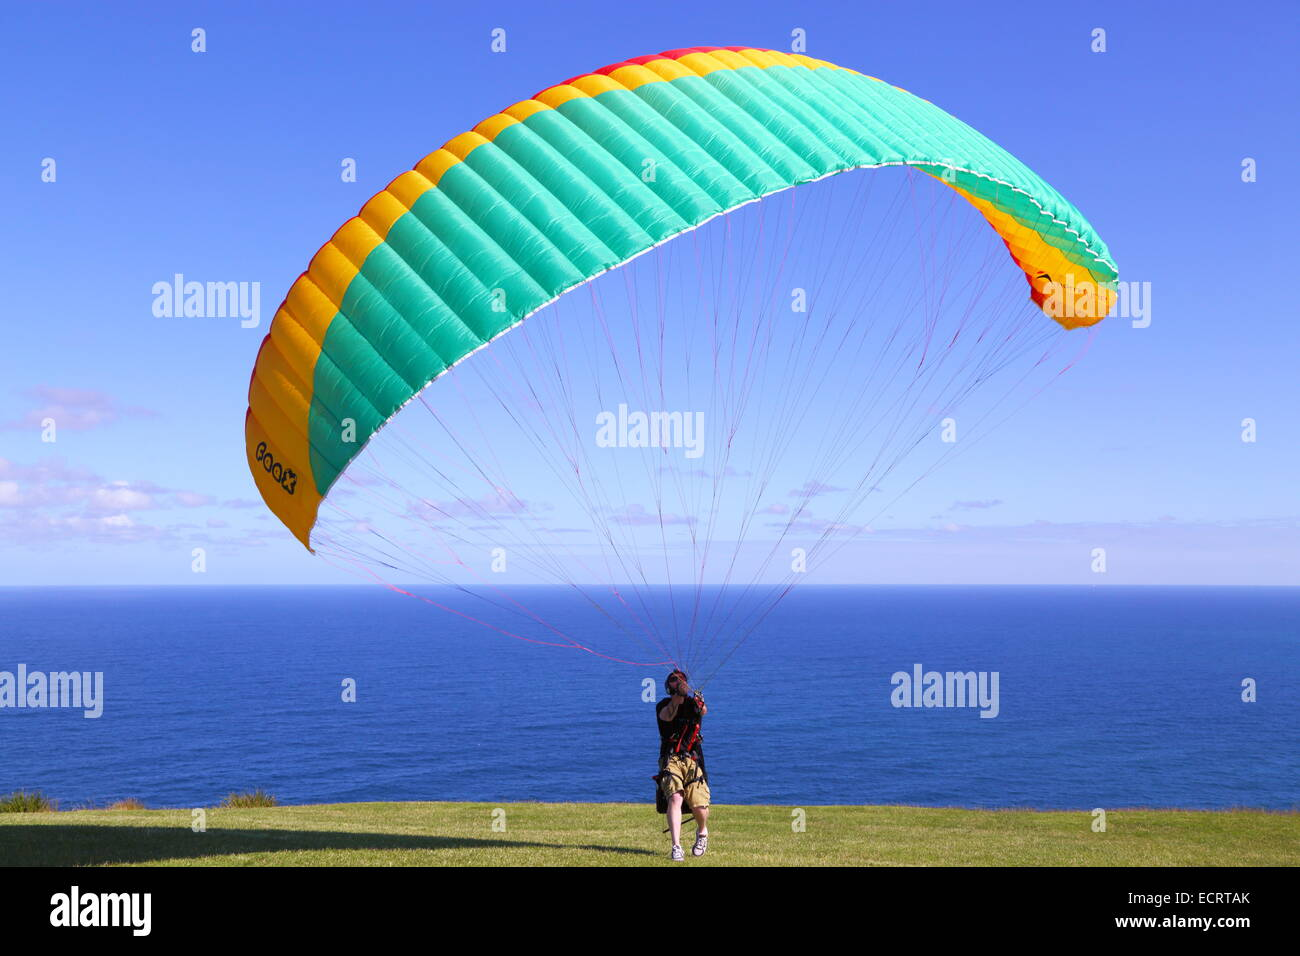 A man prepares his paraglider to lift off and soar over the Pacific Ocean off Bald Hill, New South Wales, Australia. - Stock Image